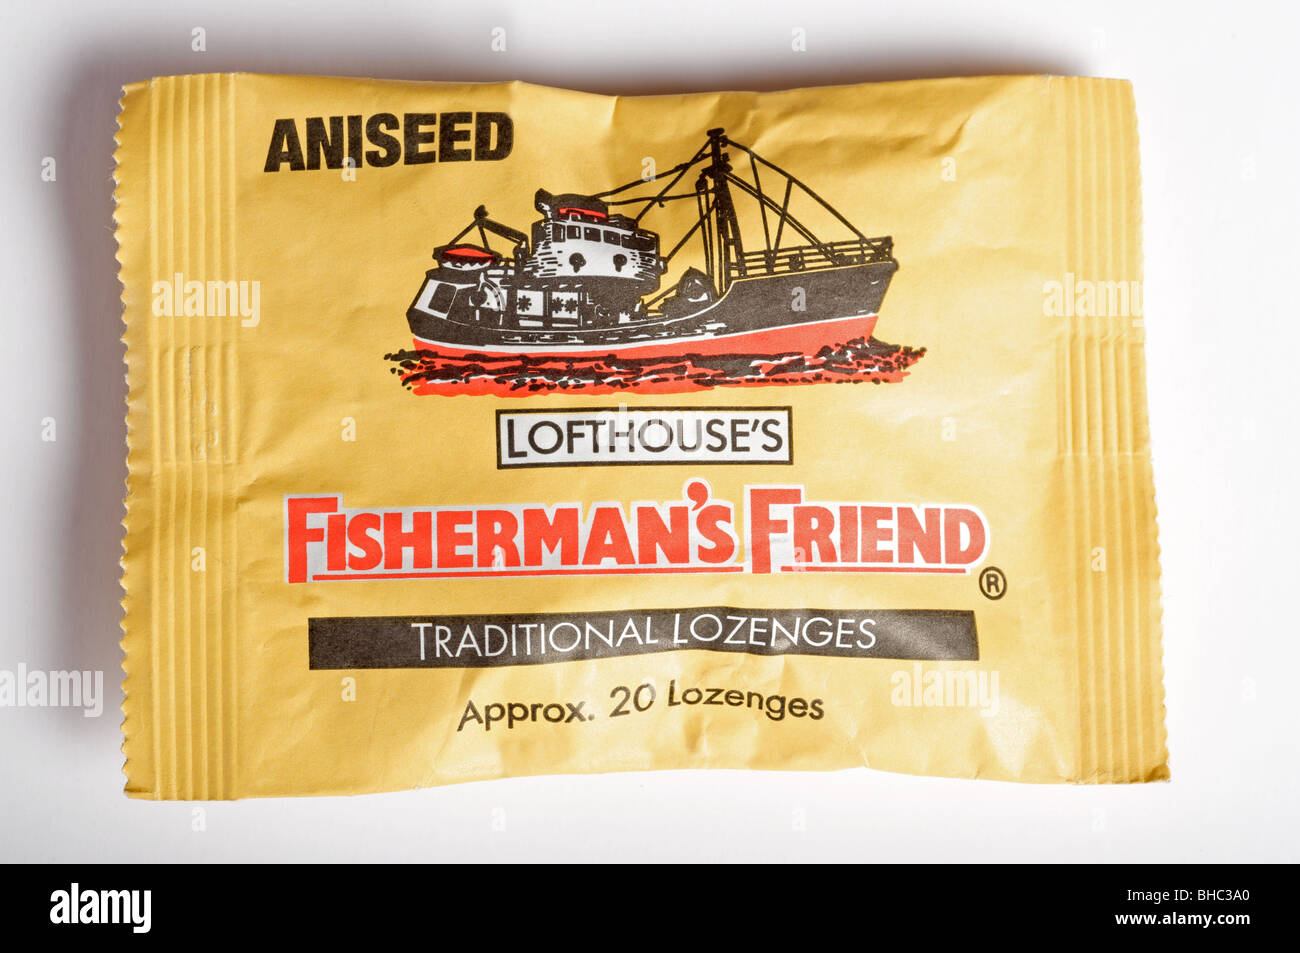 Packet of Lofthouse's Fisherman's Friend lozenges - Stock Image